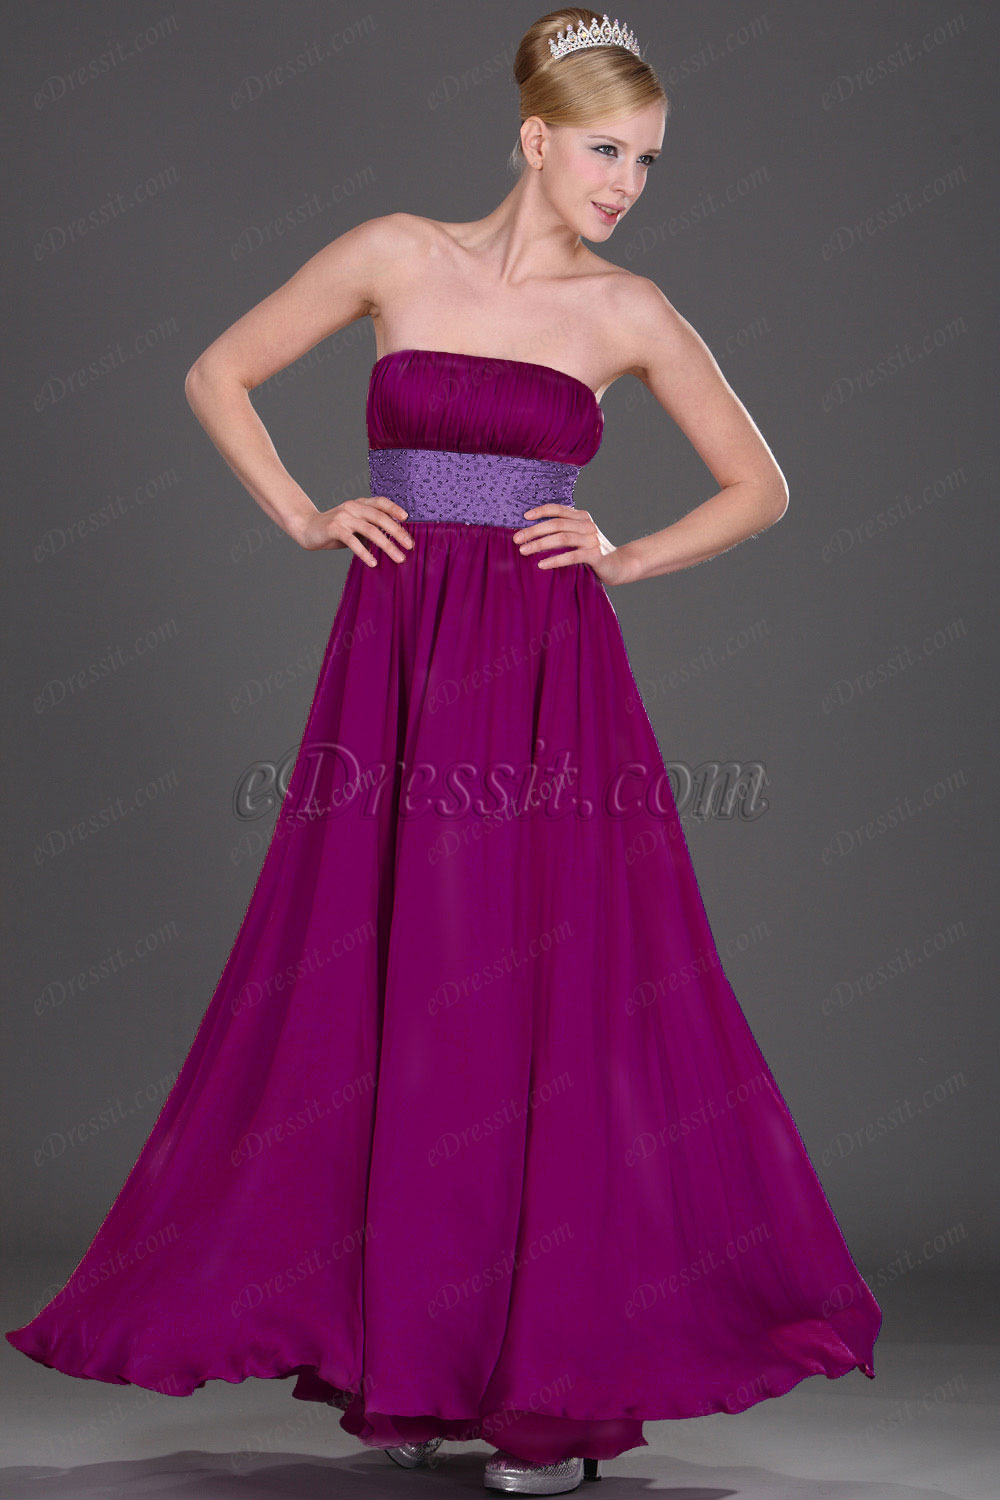 Clearance Sale! eDressit Strapless Evening Dress--Size UK14 (00108316b)